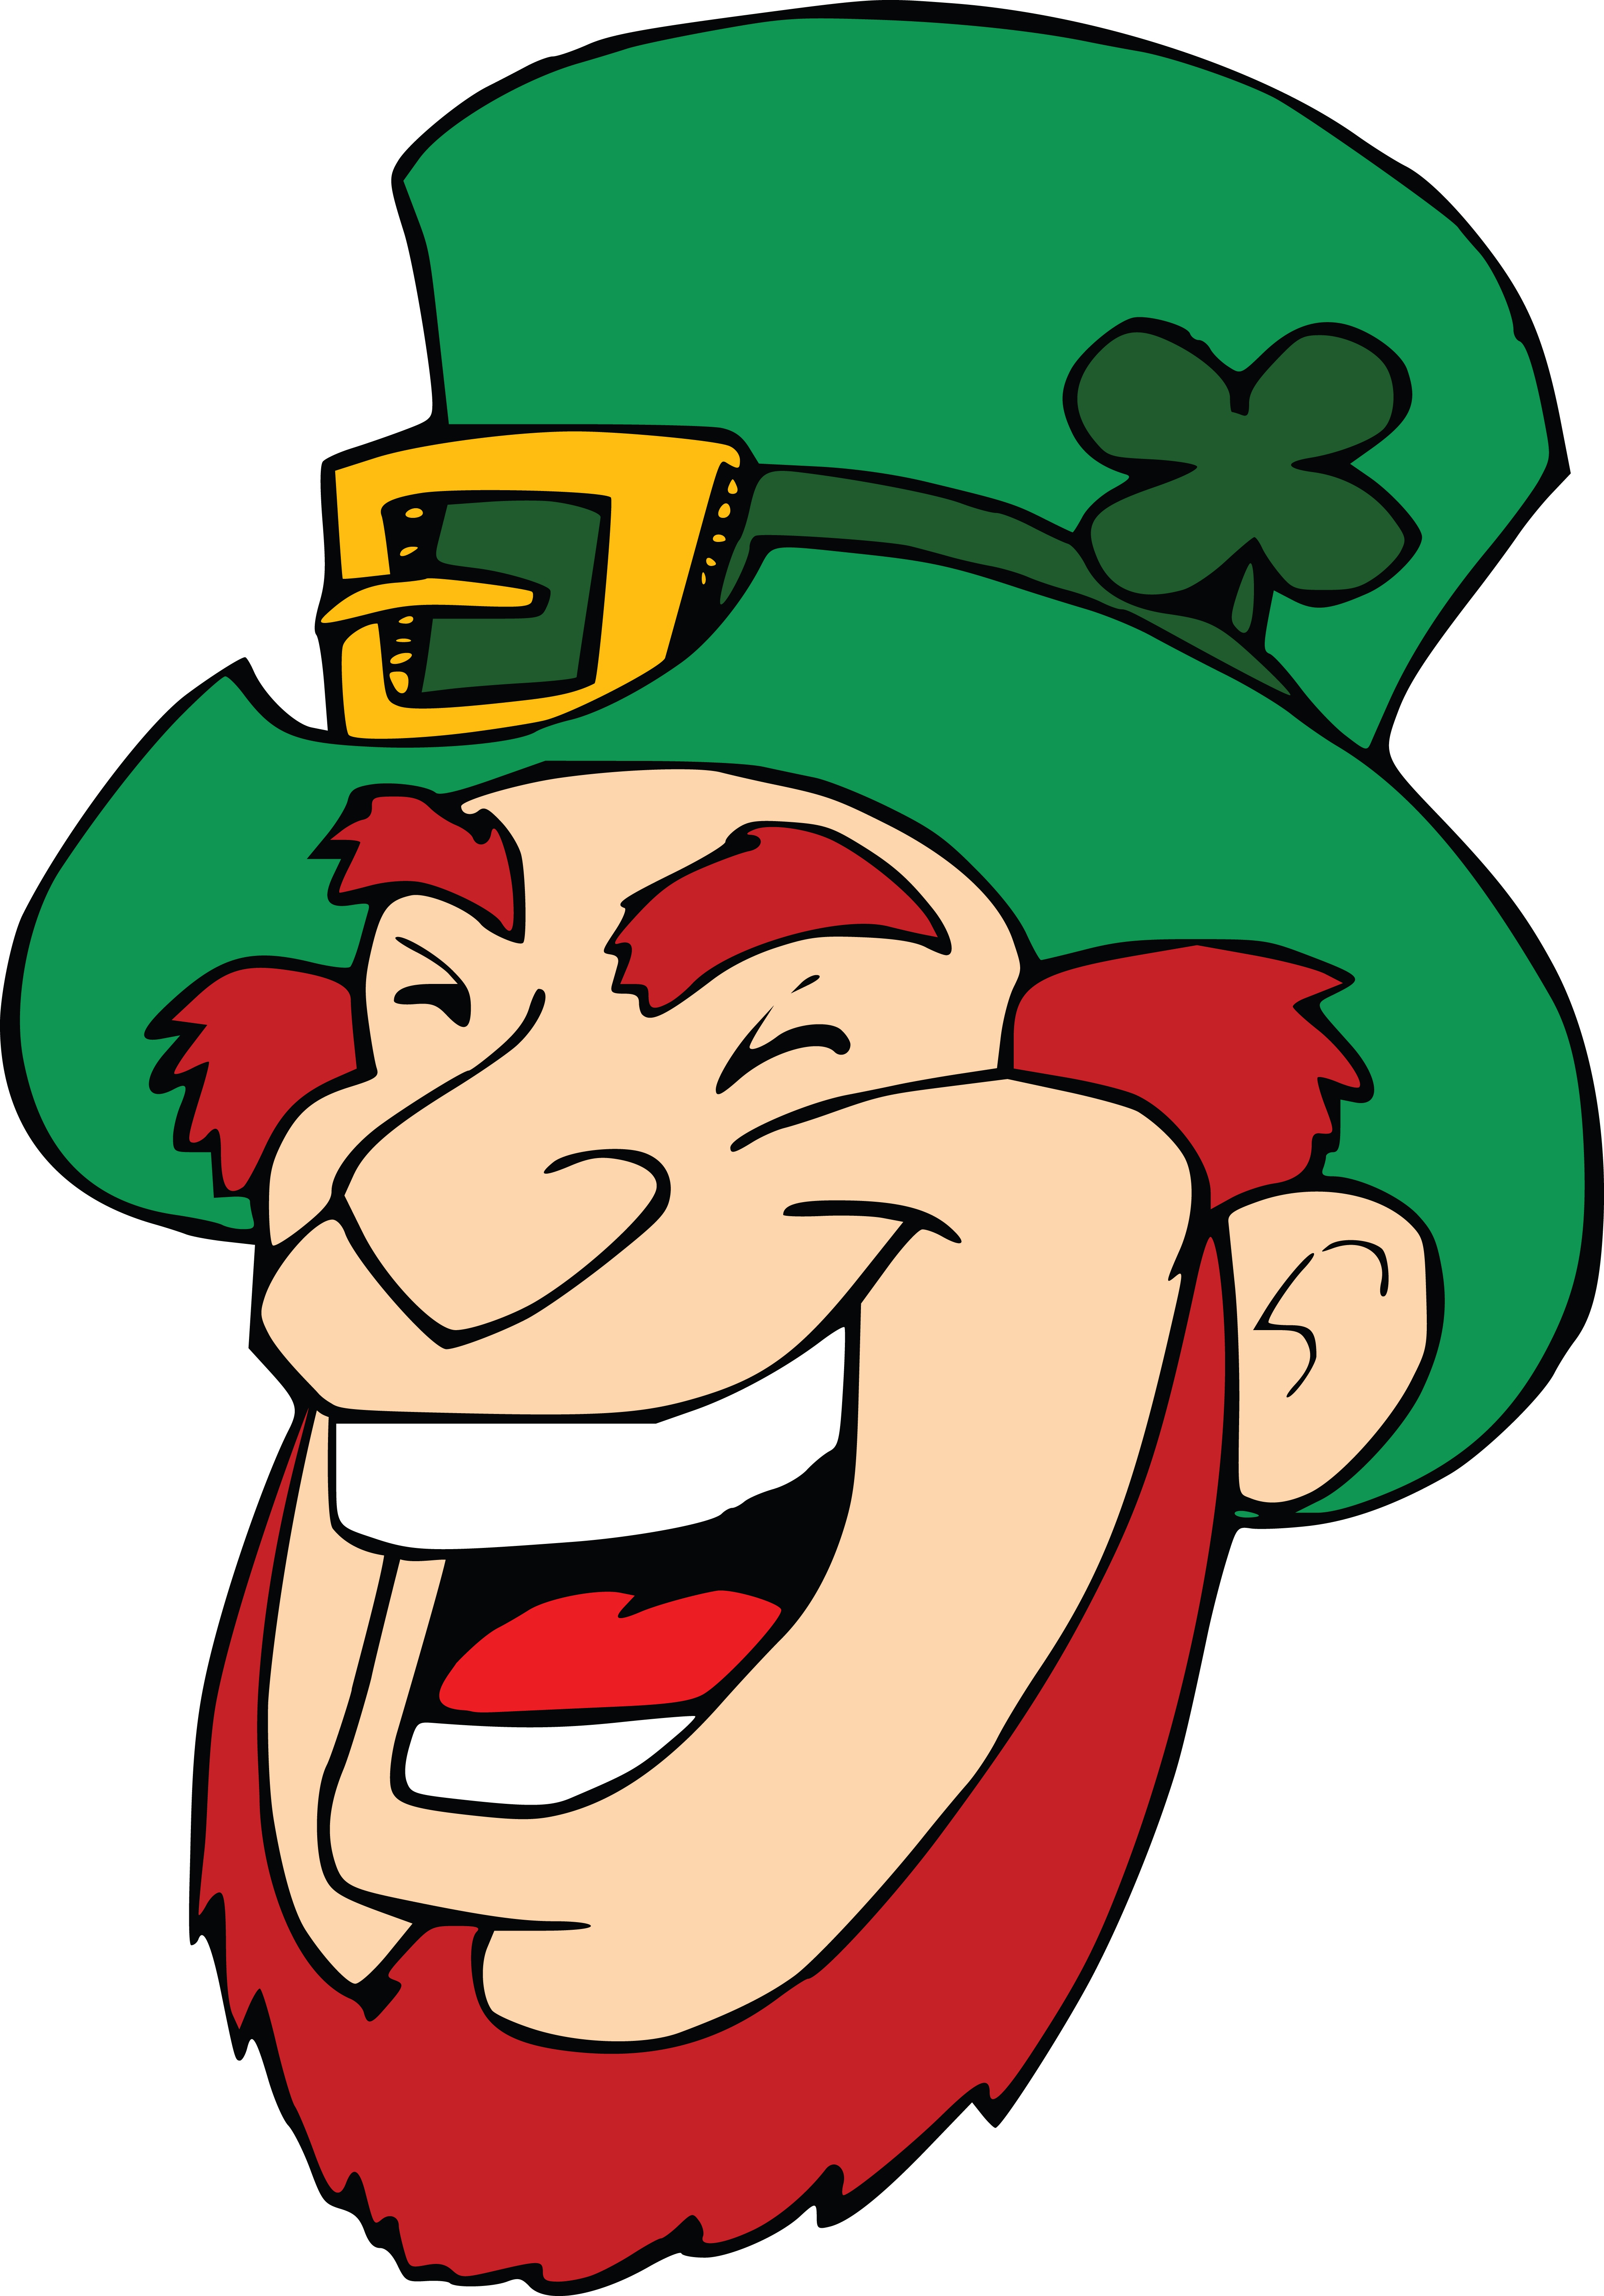 Free clip art laughing picture freeuse stock Clipart Of A Laughing Leprechaun Face picture freeuse stock